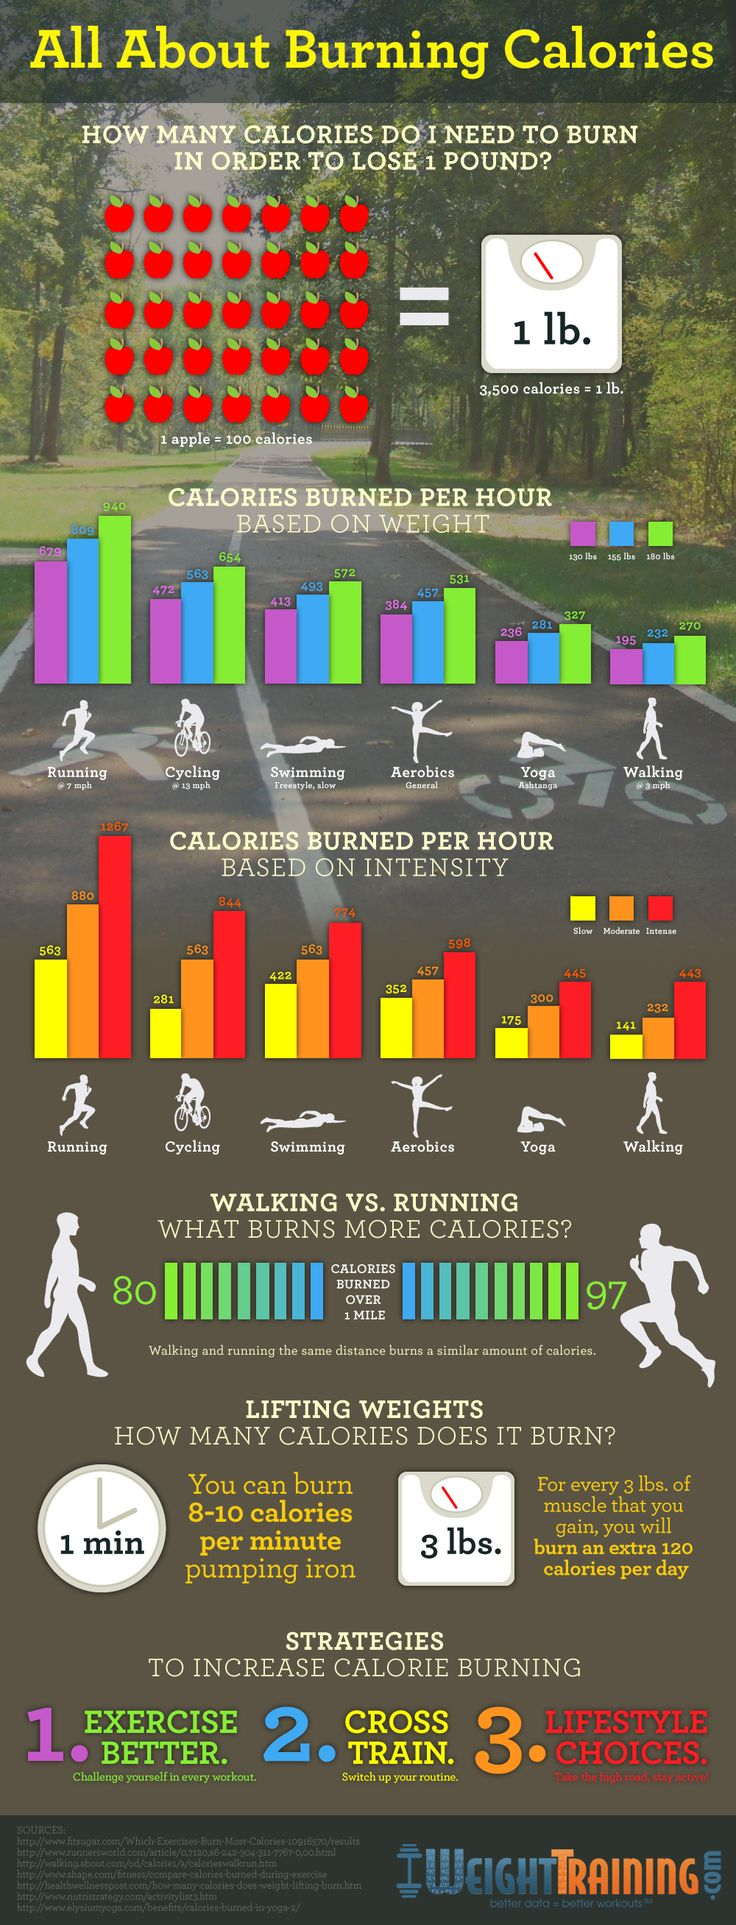 25 best ideas about calories burned chart on pinterest running calories burned burn calories. Black Bedroom Furniture Sets. Home Design Ideas